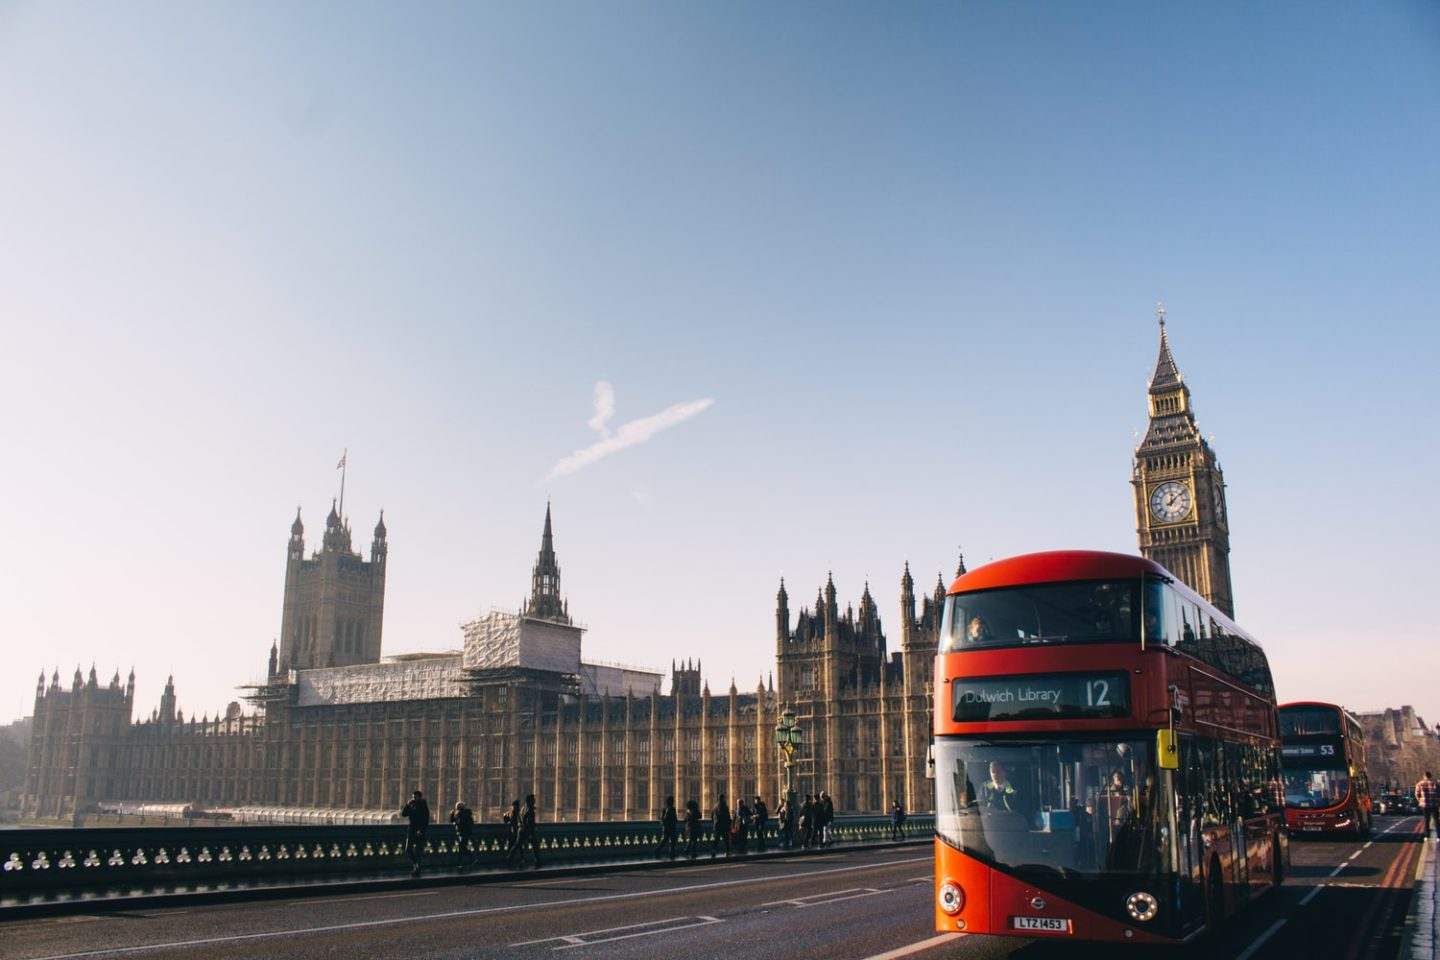 where to visit in london, red double decker by westminster